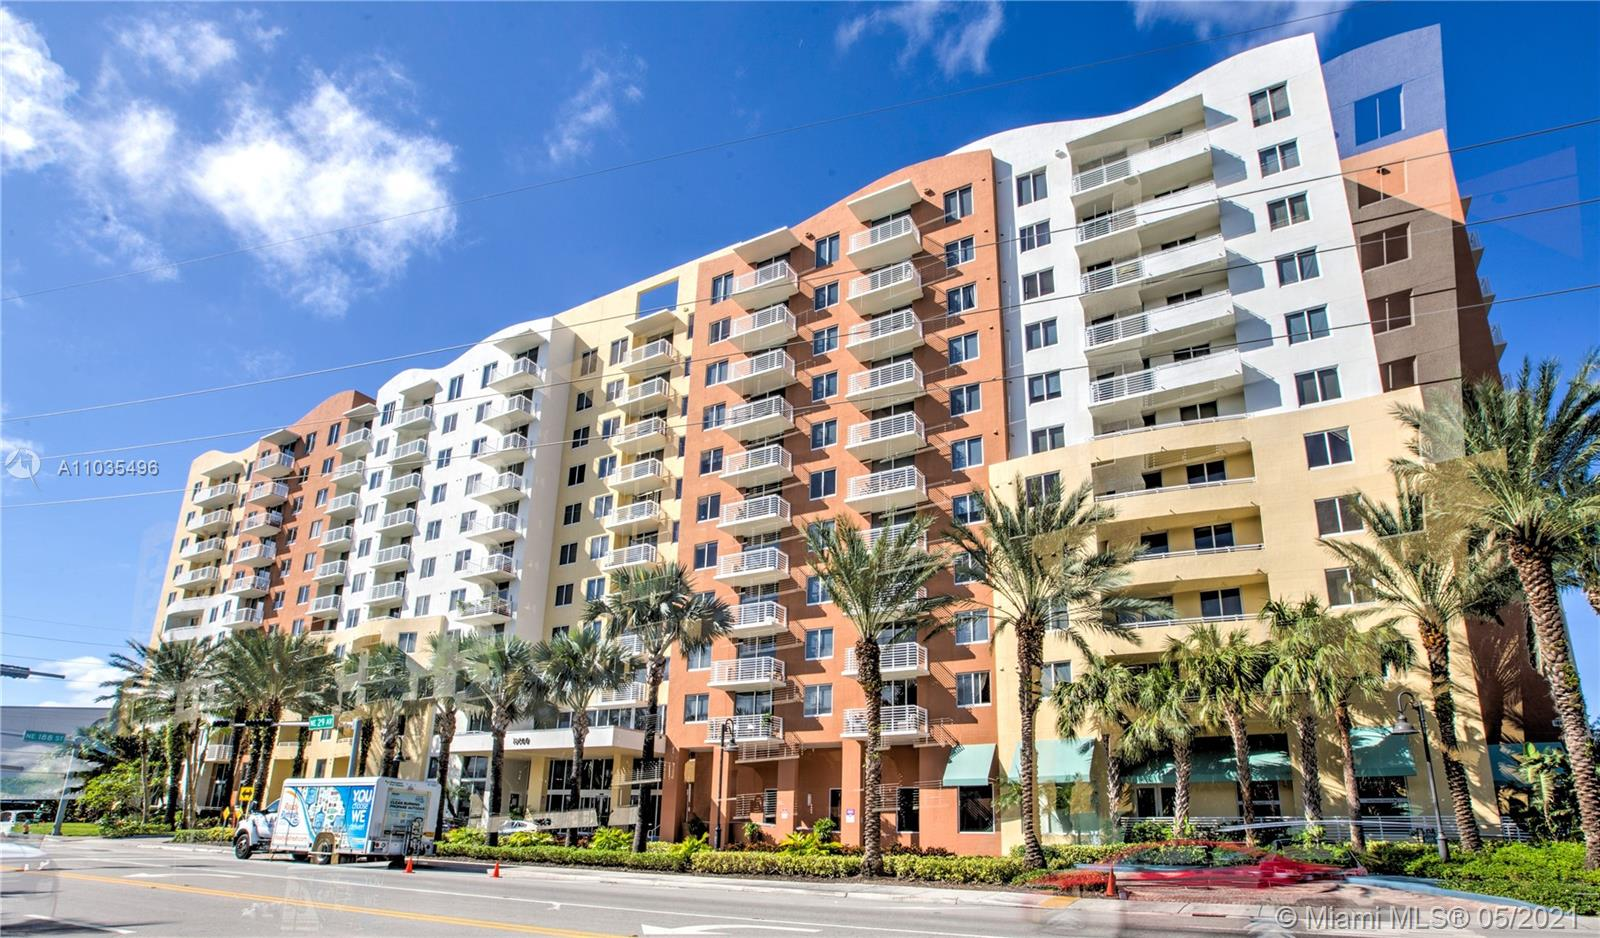 Venture One #302 - 18800 NE 29th Ave #302, Aventura, FL 33180